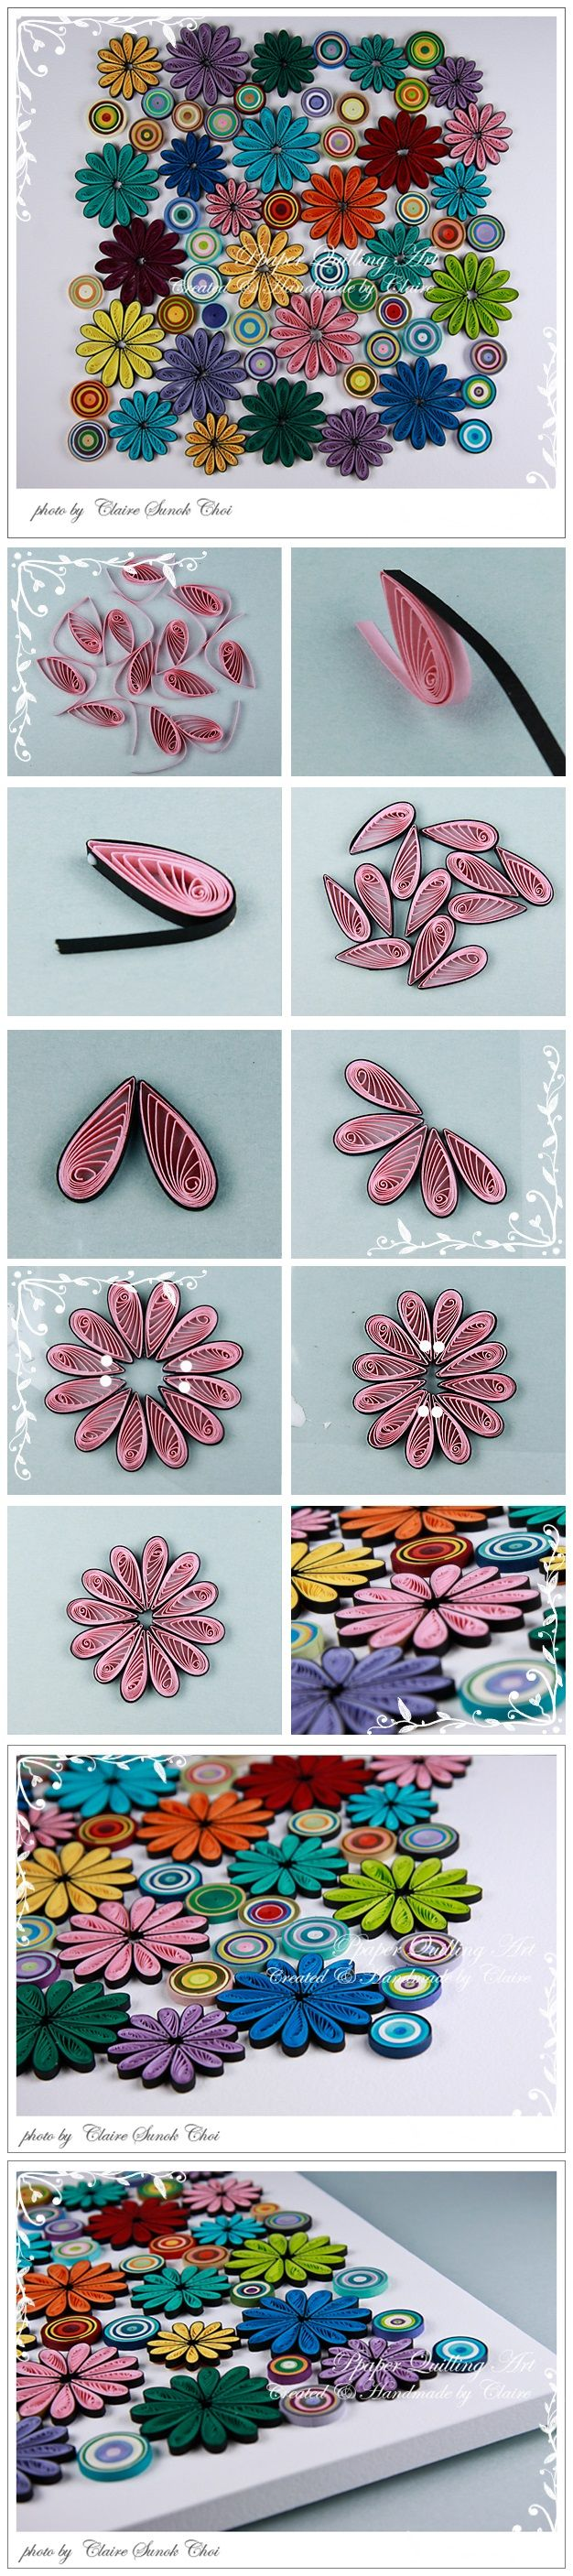 How To Make Wall Decoration With Paper Flowers : Diy projects paper wall art for your rooms pretty designs